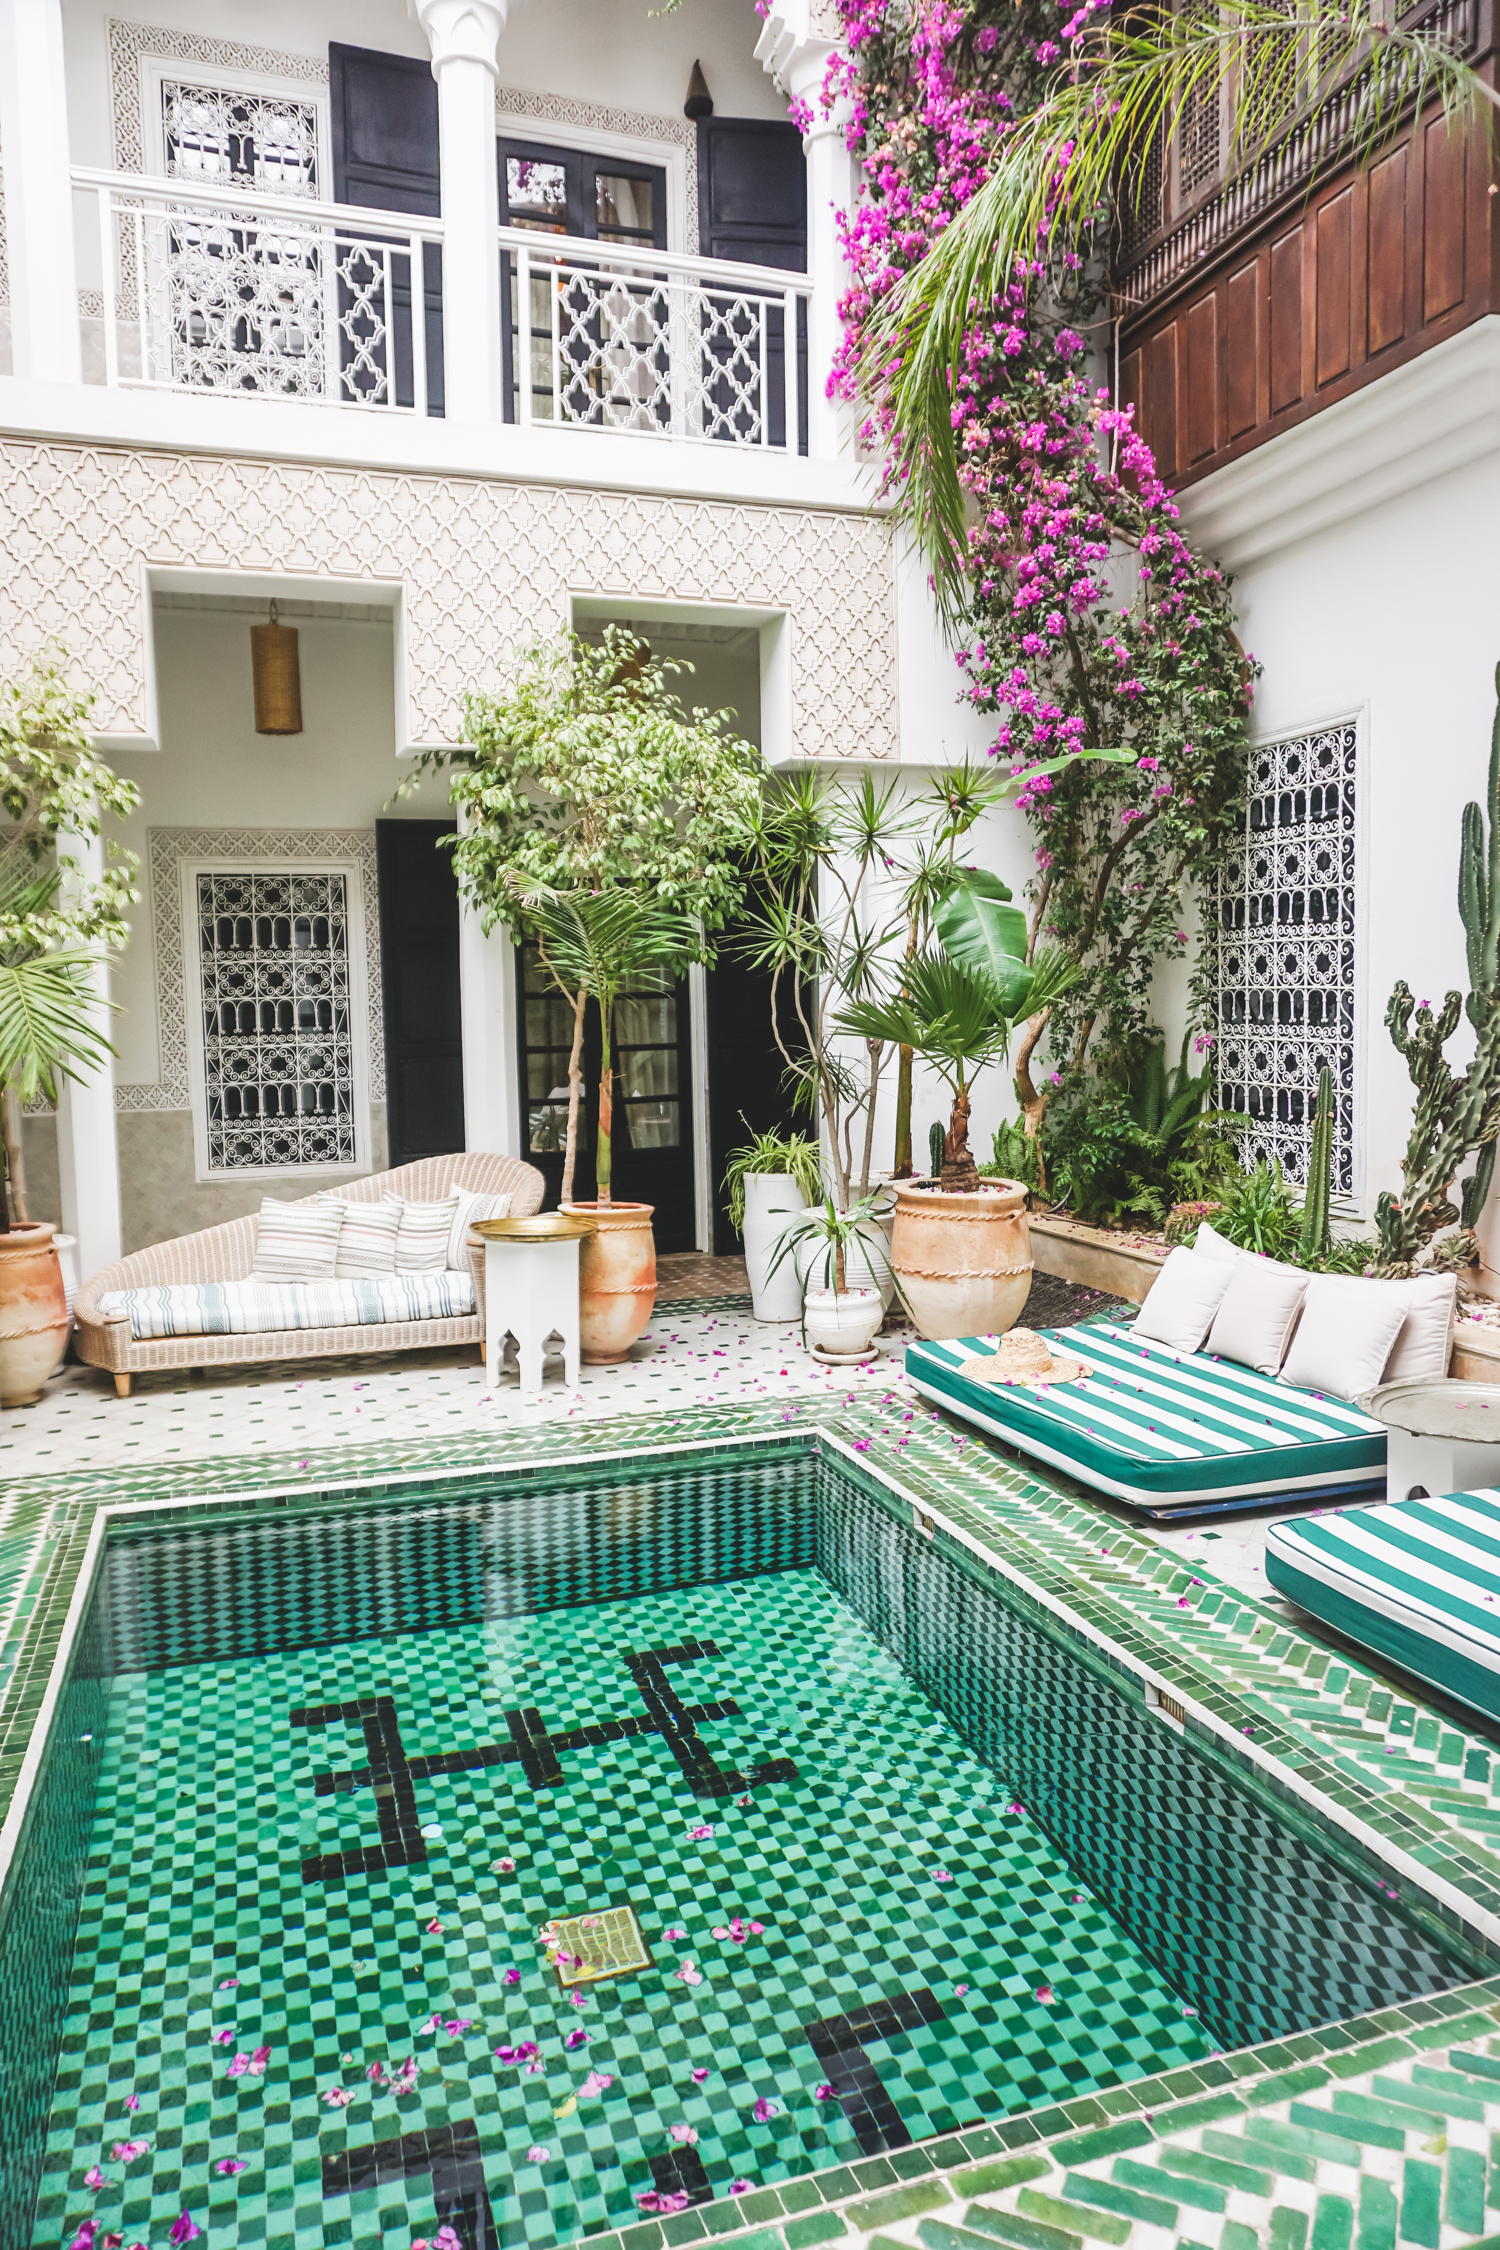 Le Riad Yasmine- Marrakech Morocco- Monique McHugh Blog